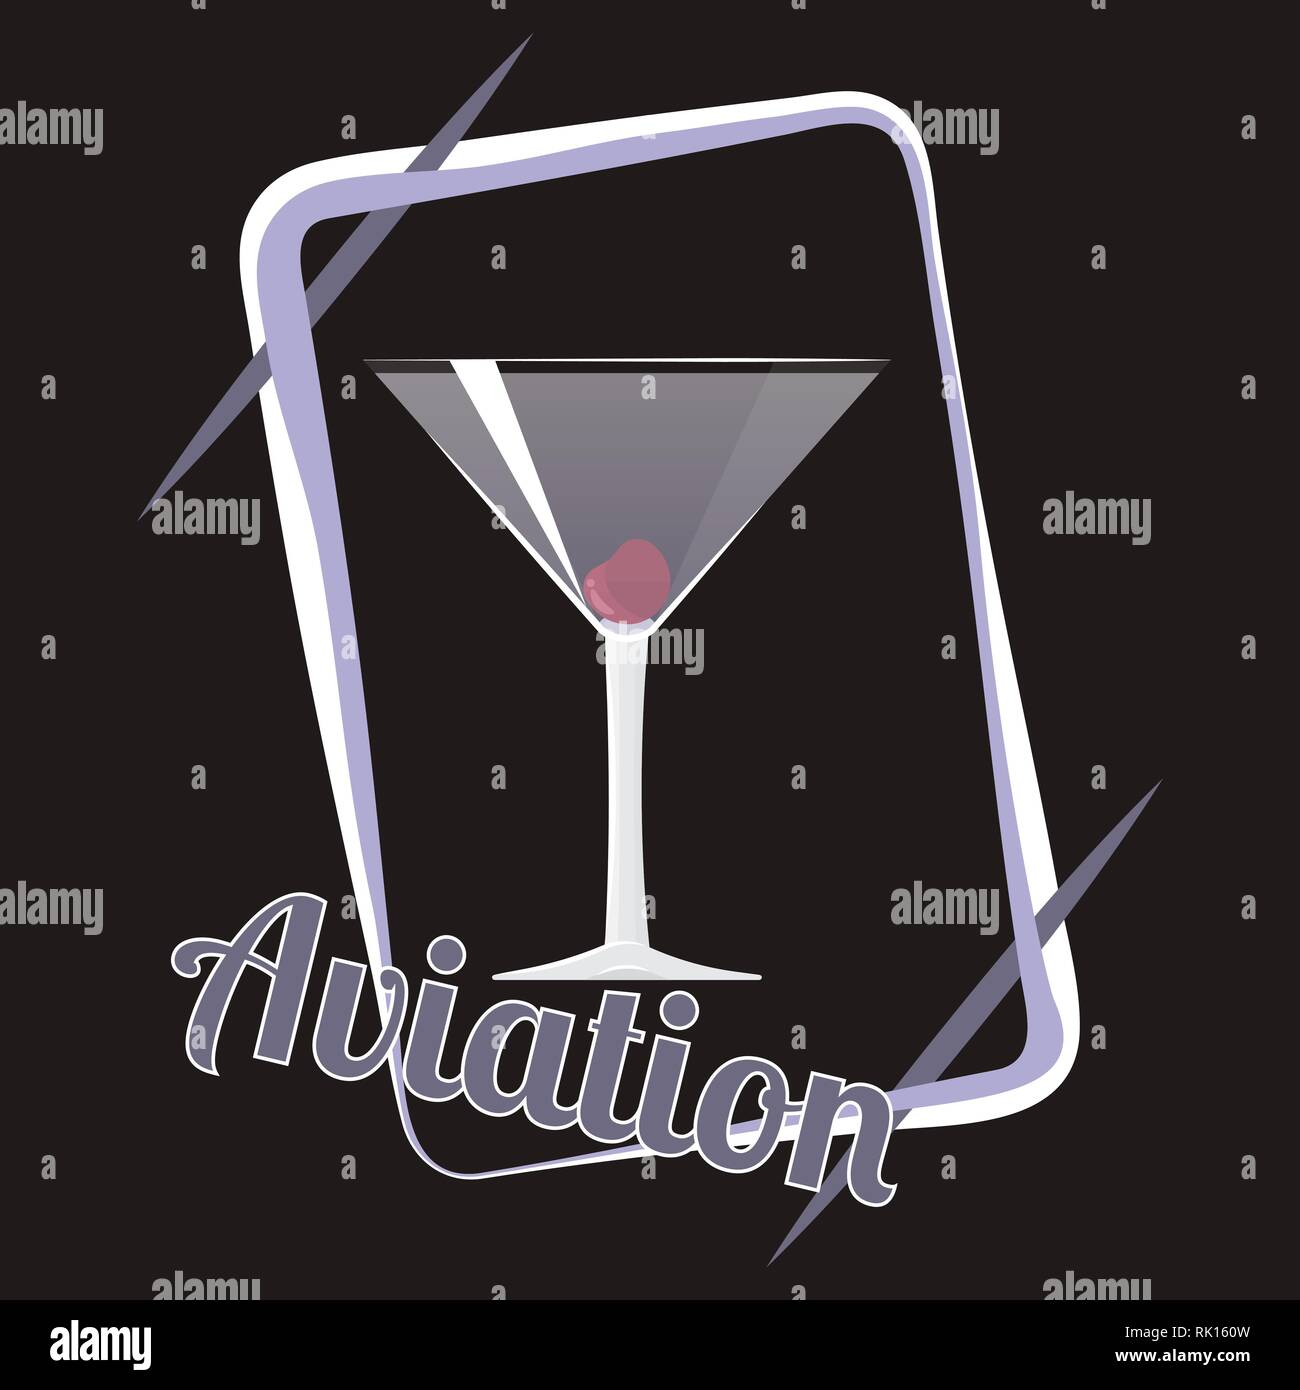 Official cocktail icon, The Unforgettable Aviation cartoon illustration for bar or restoration  alcohol menu in elegant 80s style - Stock Image